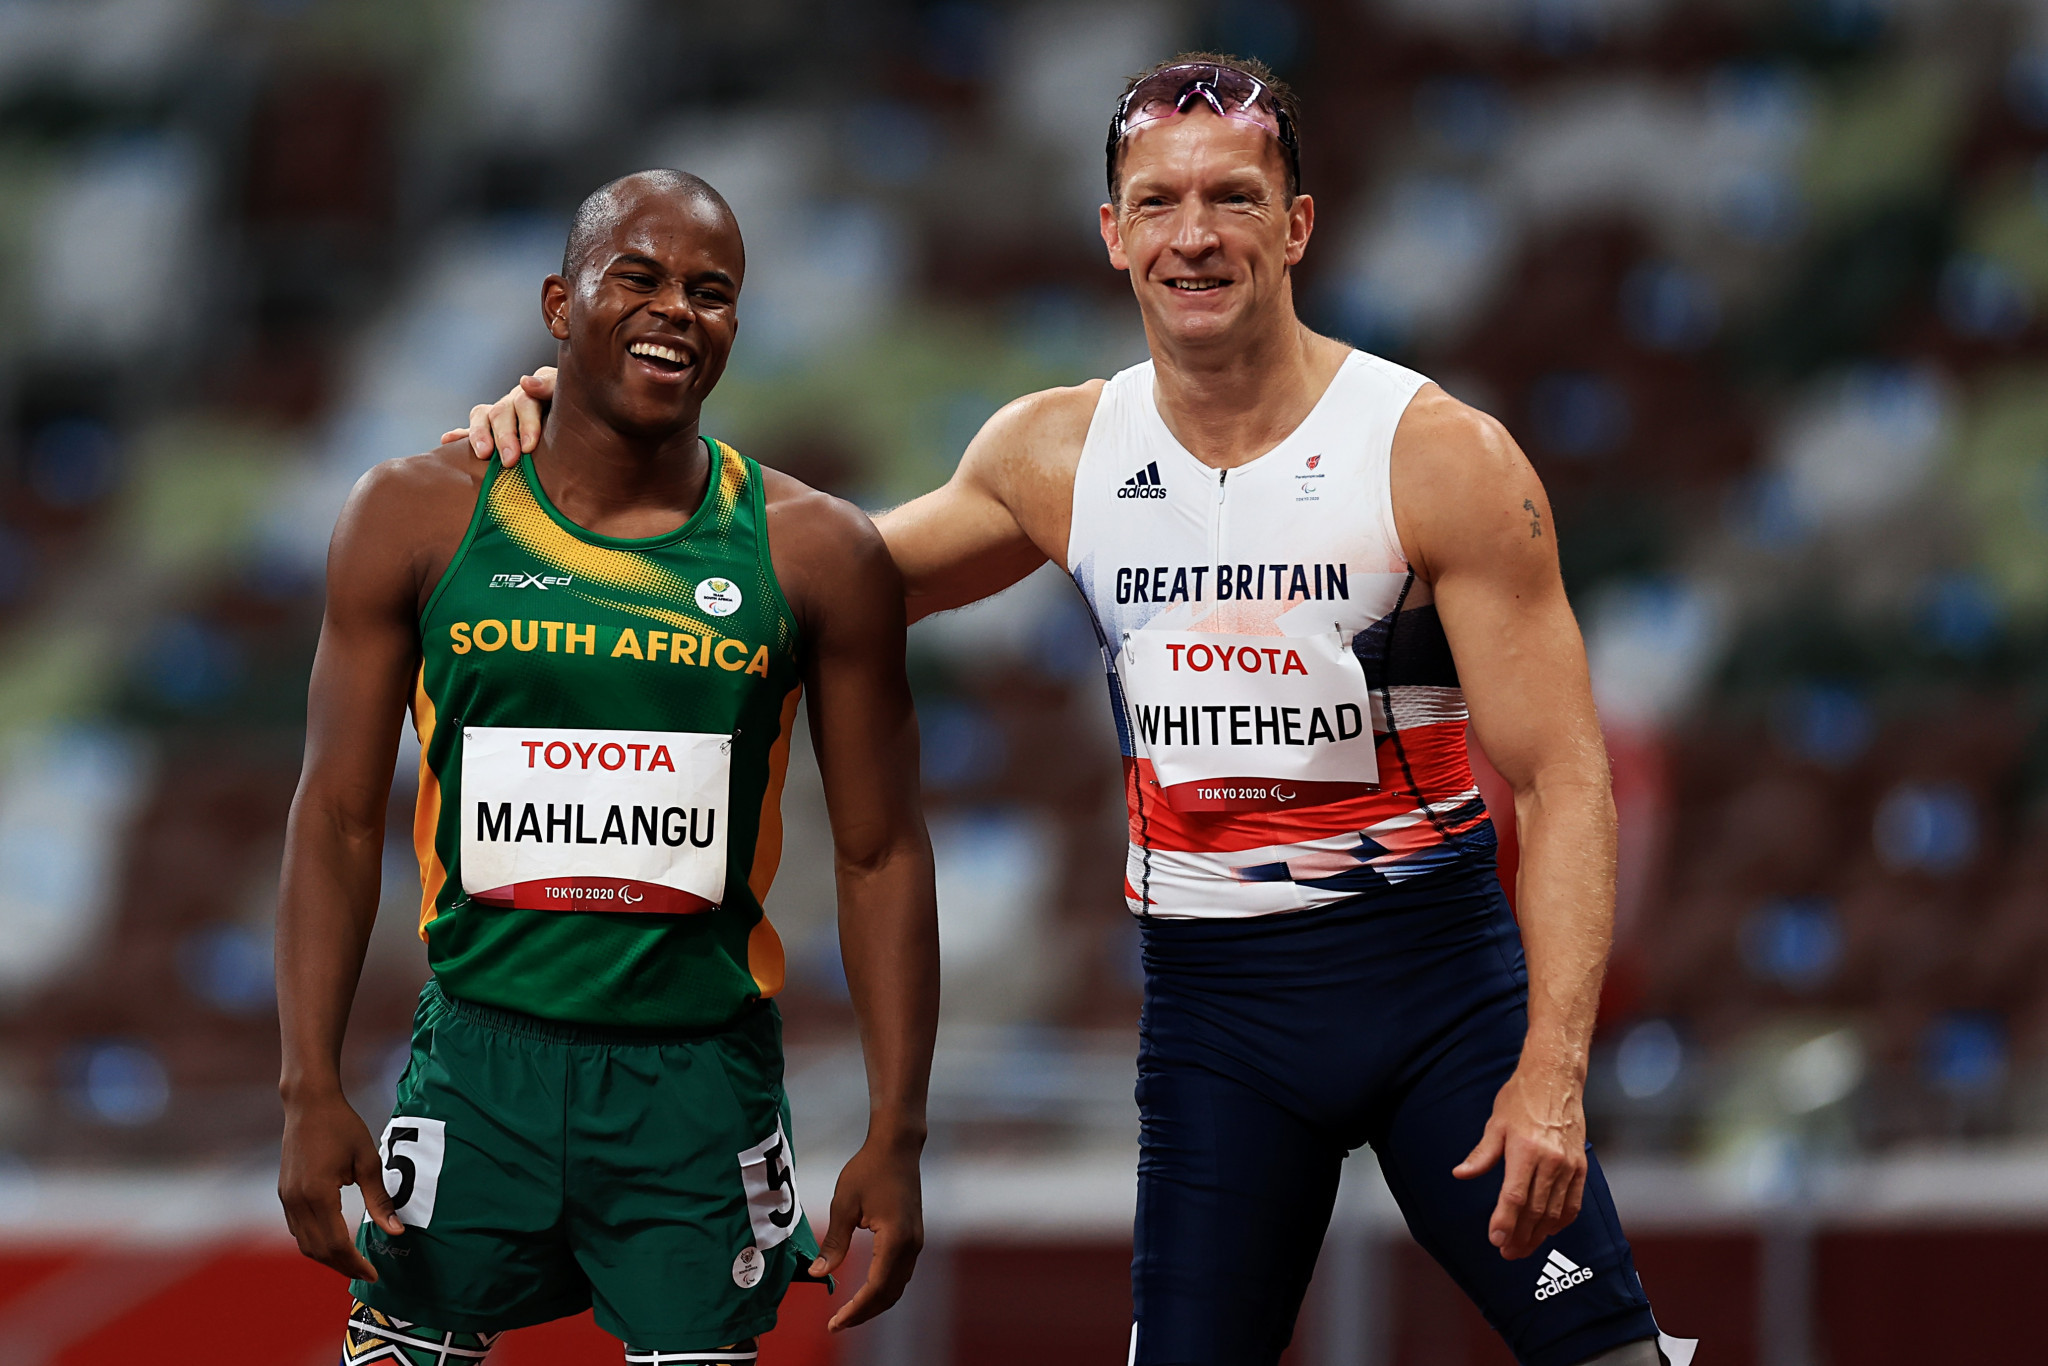 Ntando Mahlangu of South Africa, left, beat Richard Whitehead following their clash ©Getty Images